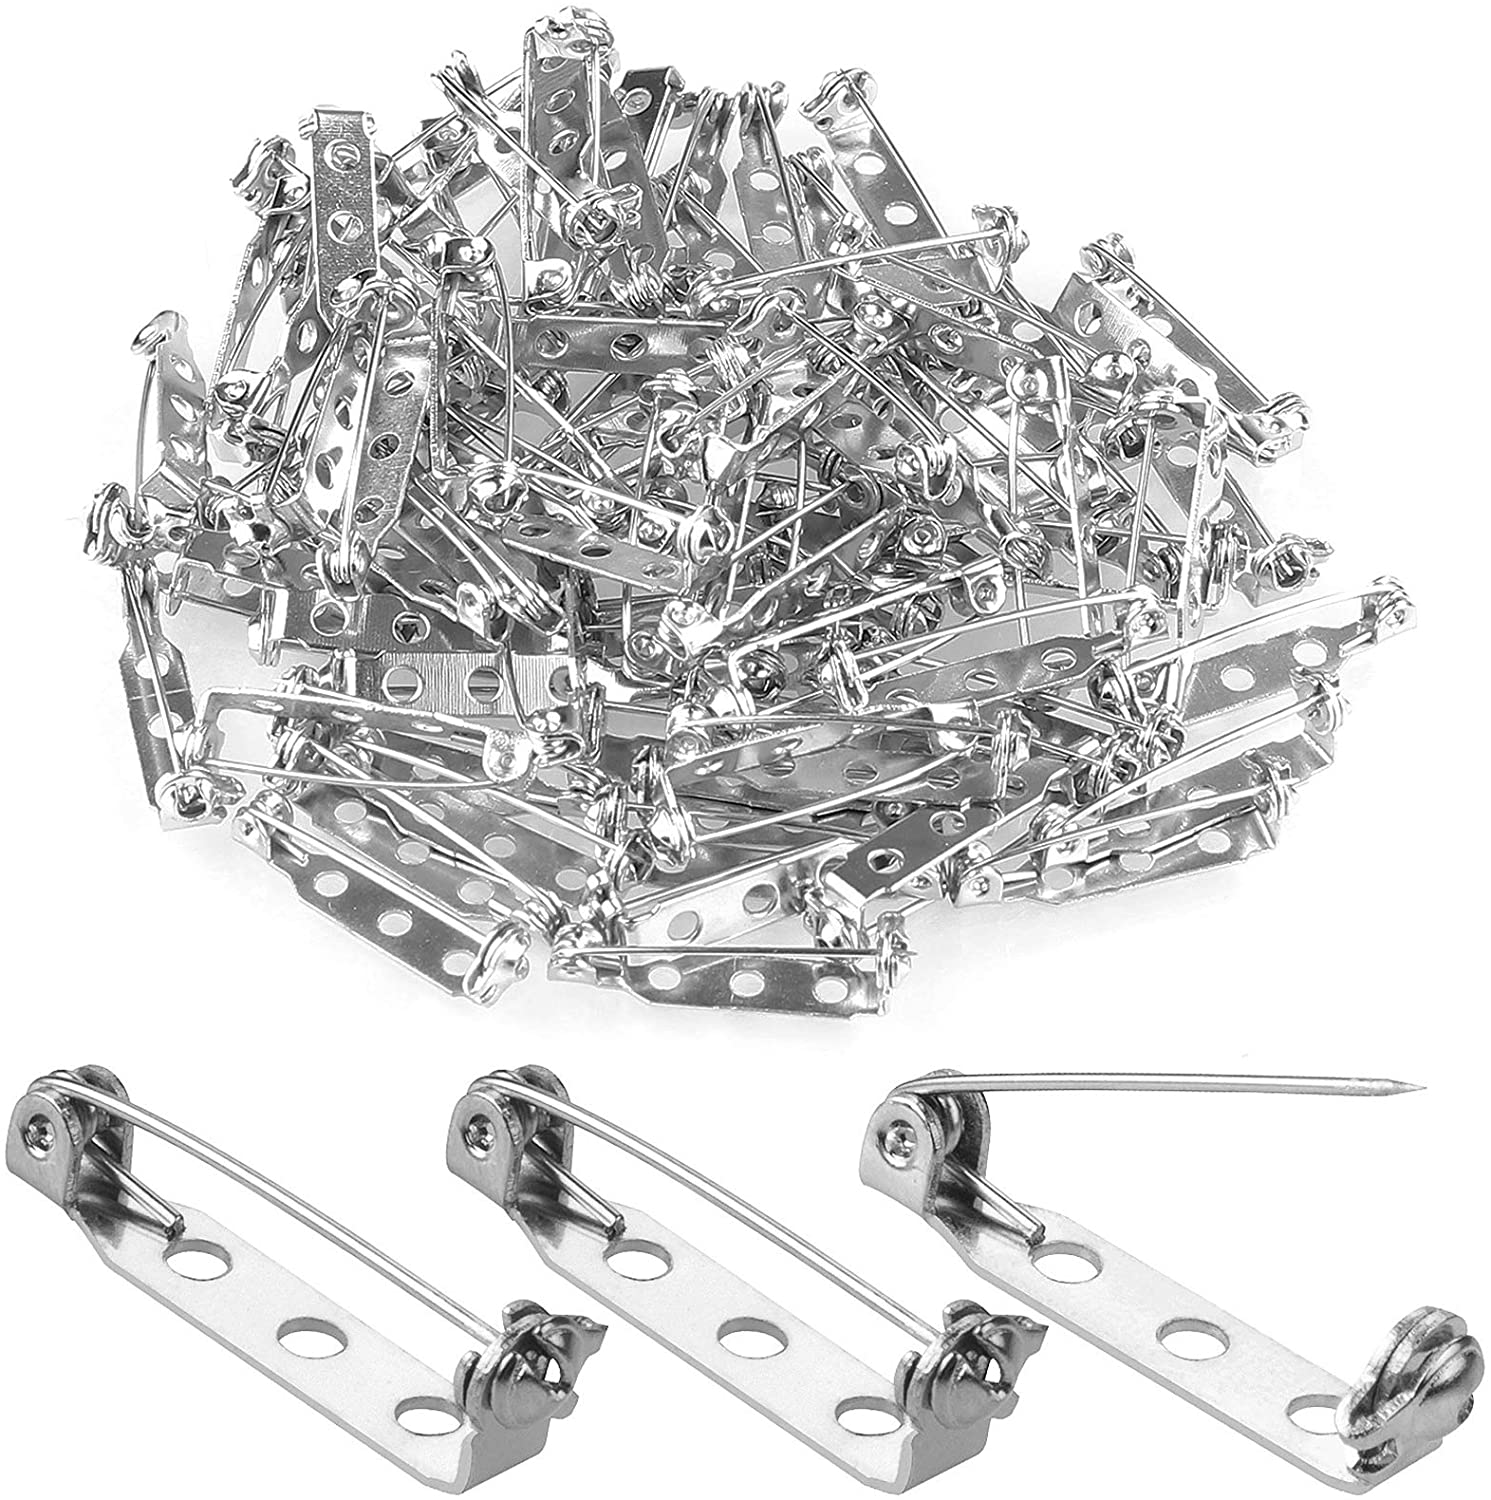 100 Pcs Silver Tone Pin 1 Inch Pins Findings Backs Back Clasp Brooch Bar Safety Pin with 3 Holes Safety Locking for Making Corsage, Name Tags, Badges, Citation Bars, Jewelry Making by AConnet